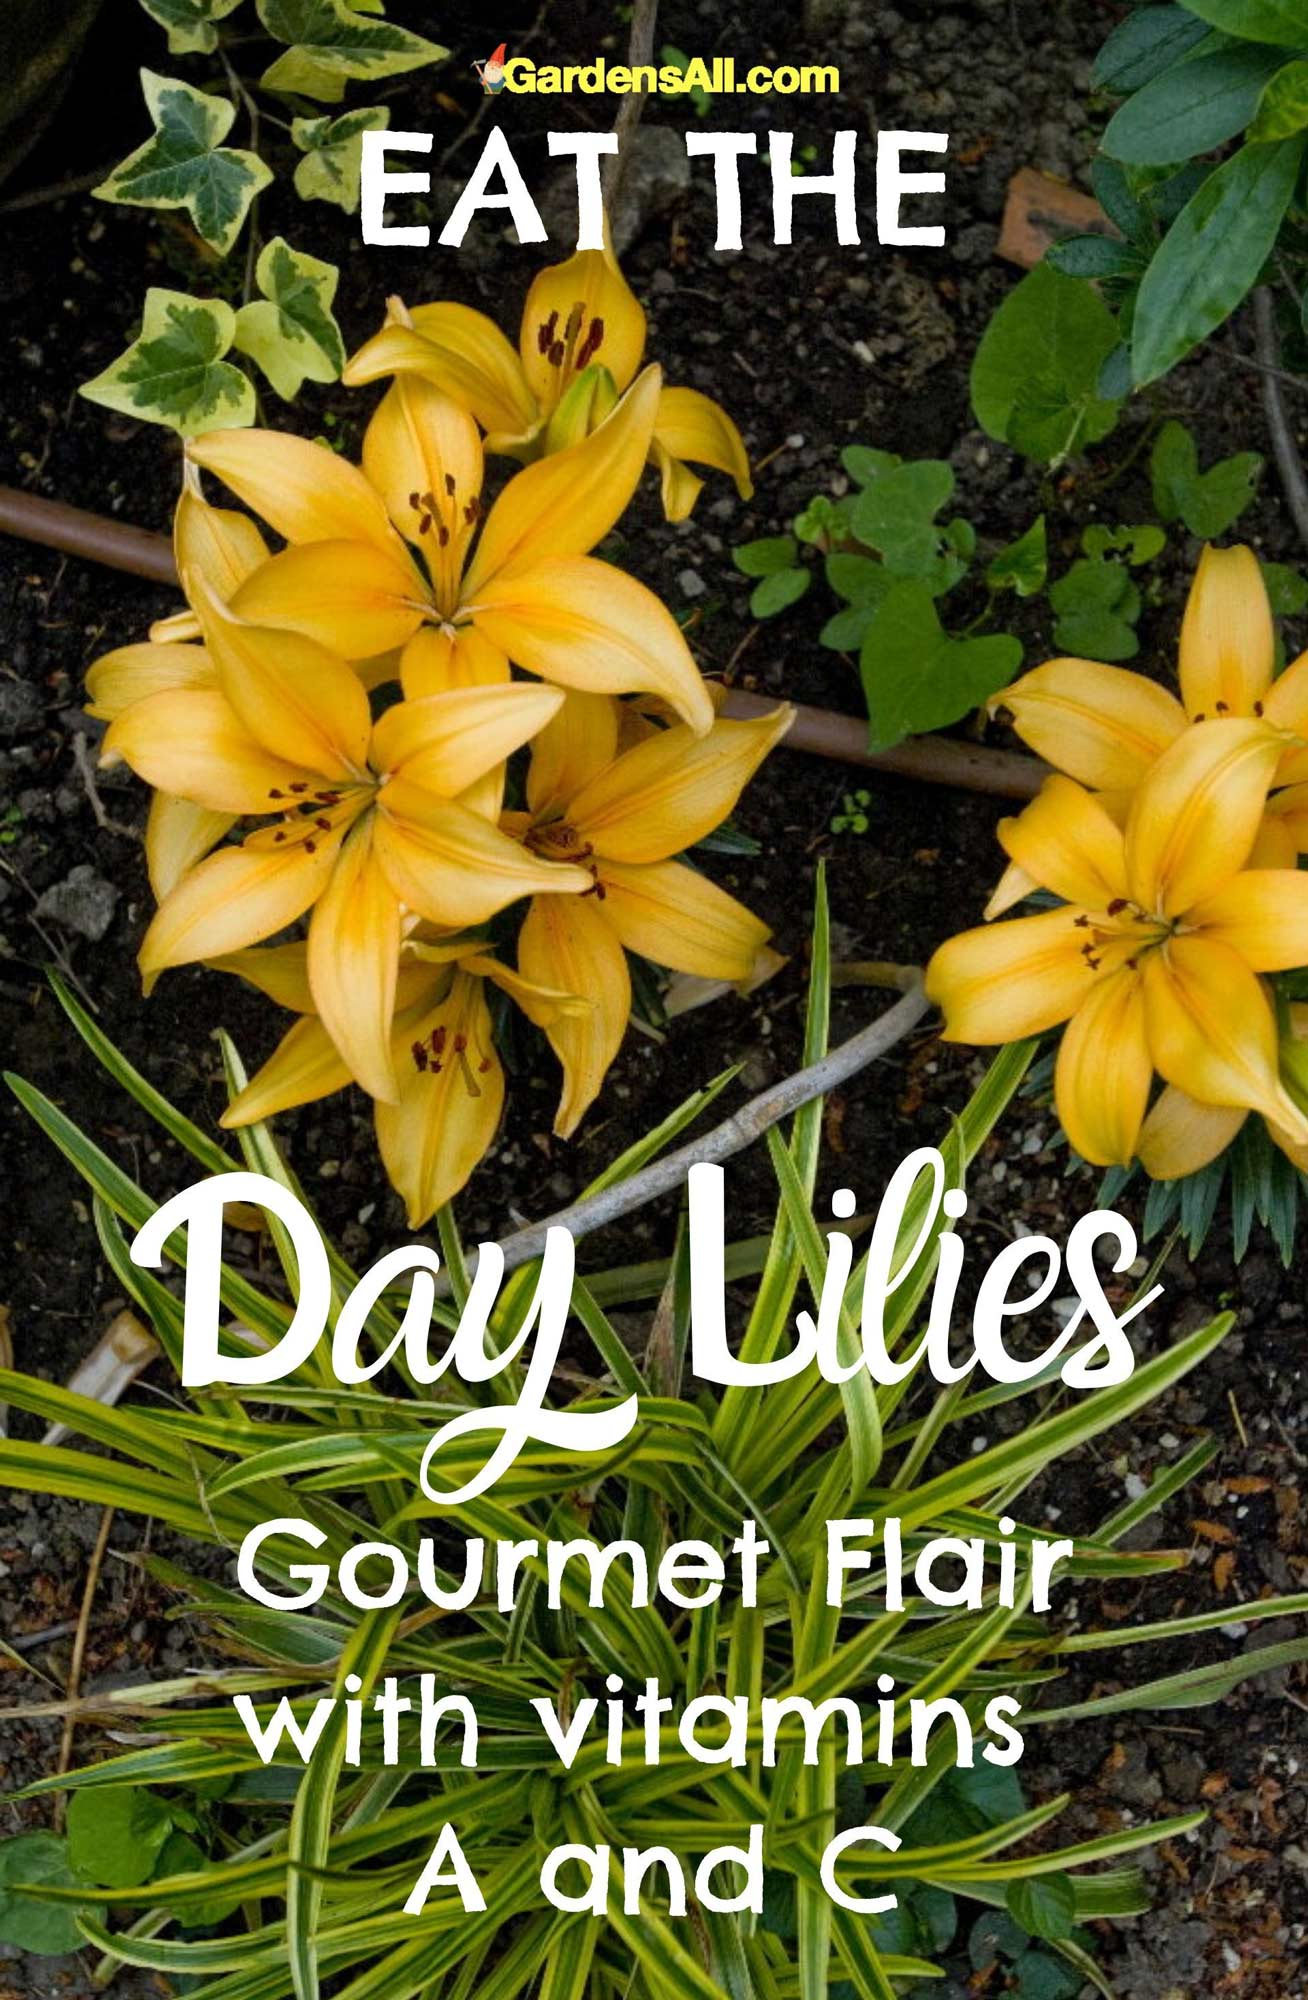 Daylily - How to use: In Asian cuisine, salads, desserts, deep-fried, or sautéed with garlic and asparagus. #EdibleFlowers #AreFlowersEdible #Flowers #HealthBenefits #Daylily #Edible #Garden